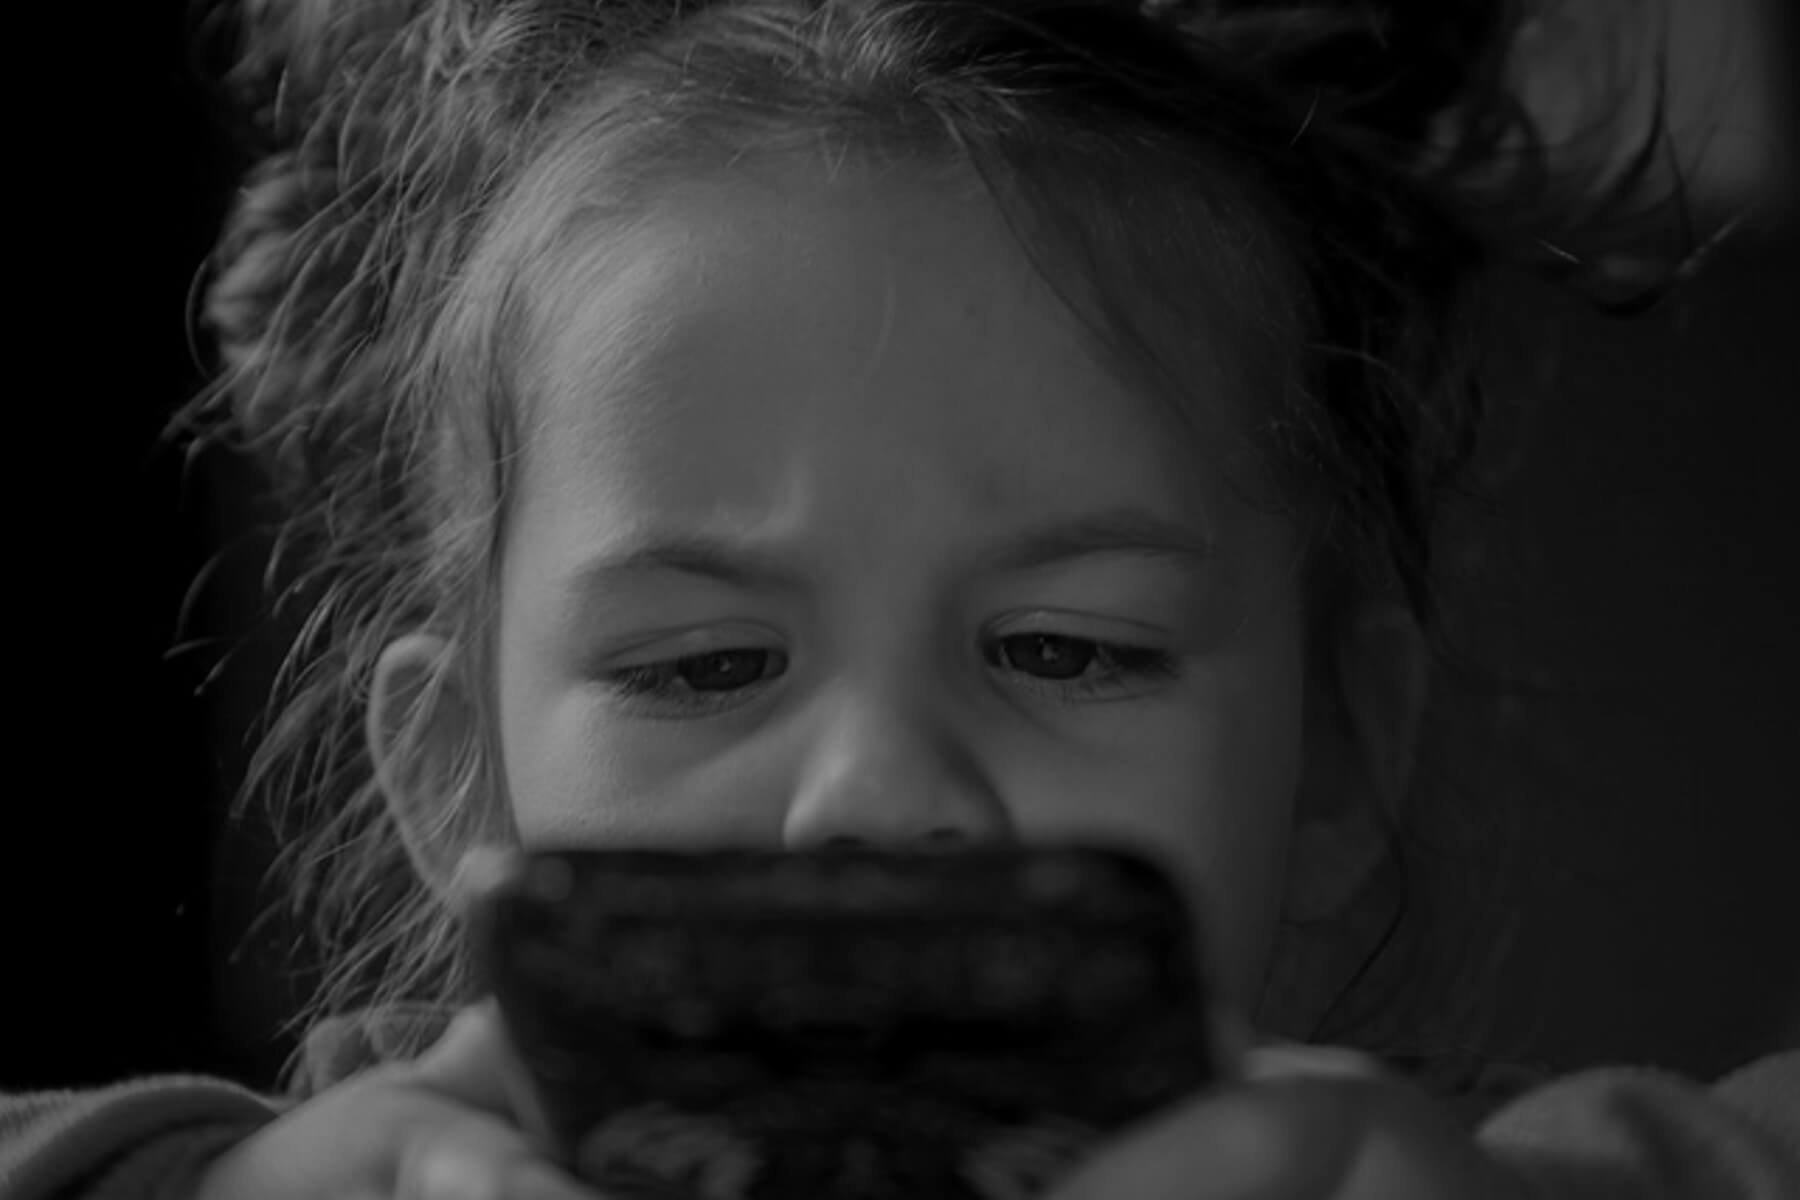 When is a Good Age for a Kid to Get a Smartphone?